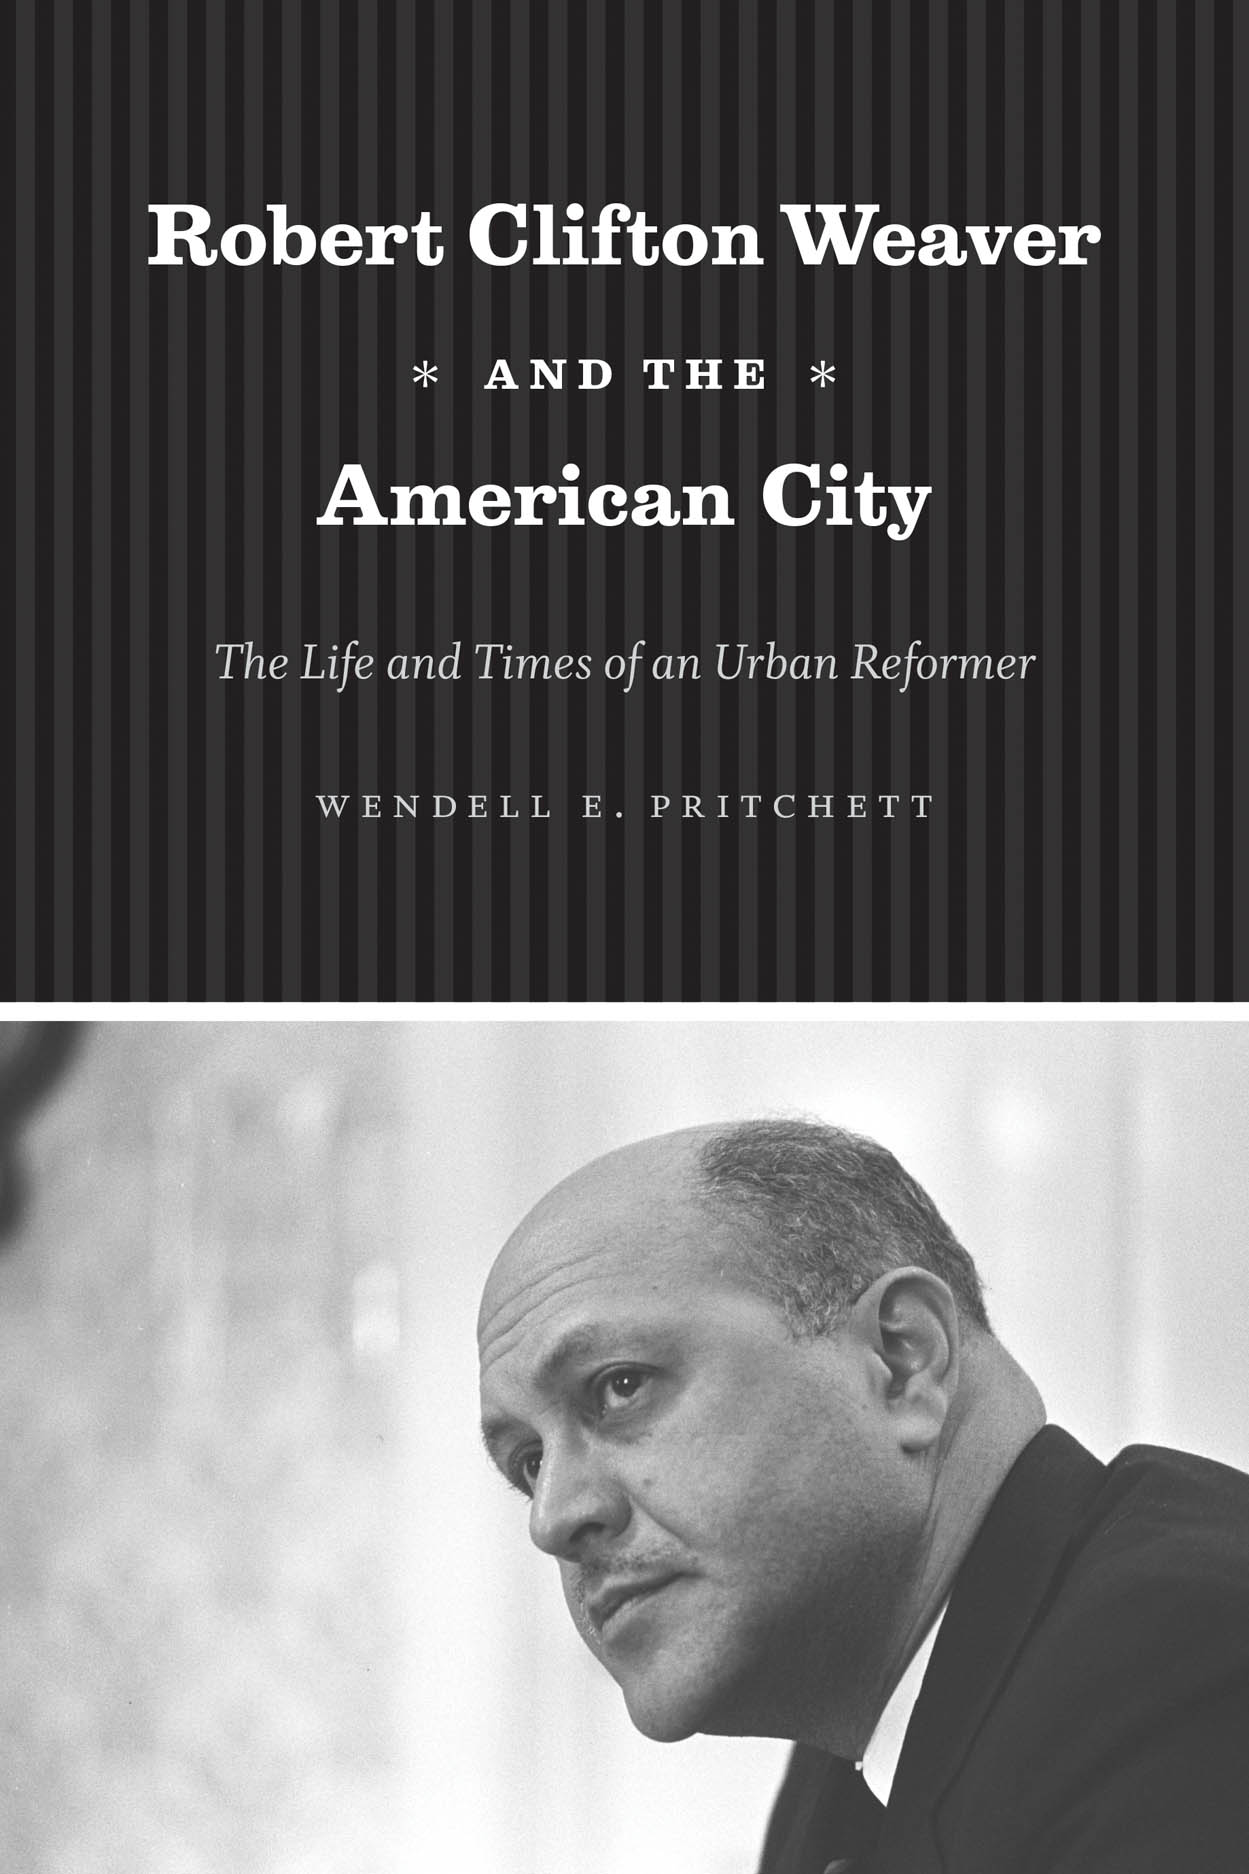 Robert Clifton Weaver and the American City: The Life and Times of an Urban Reformer